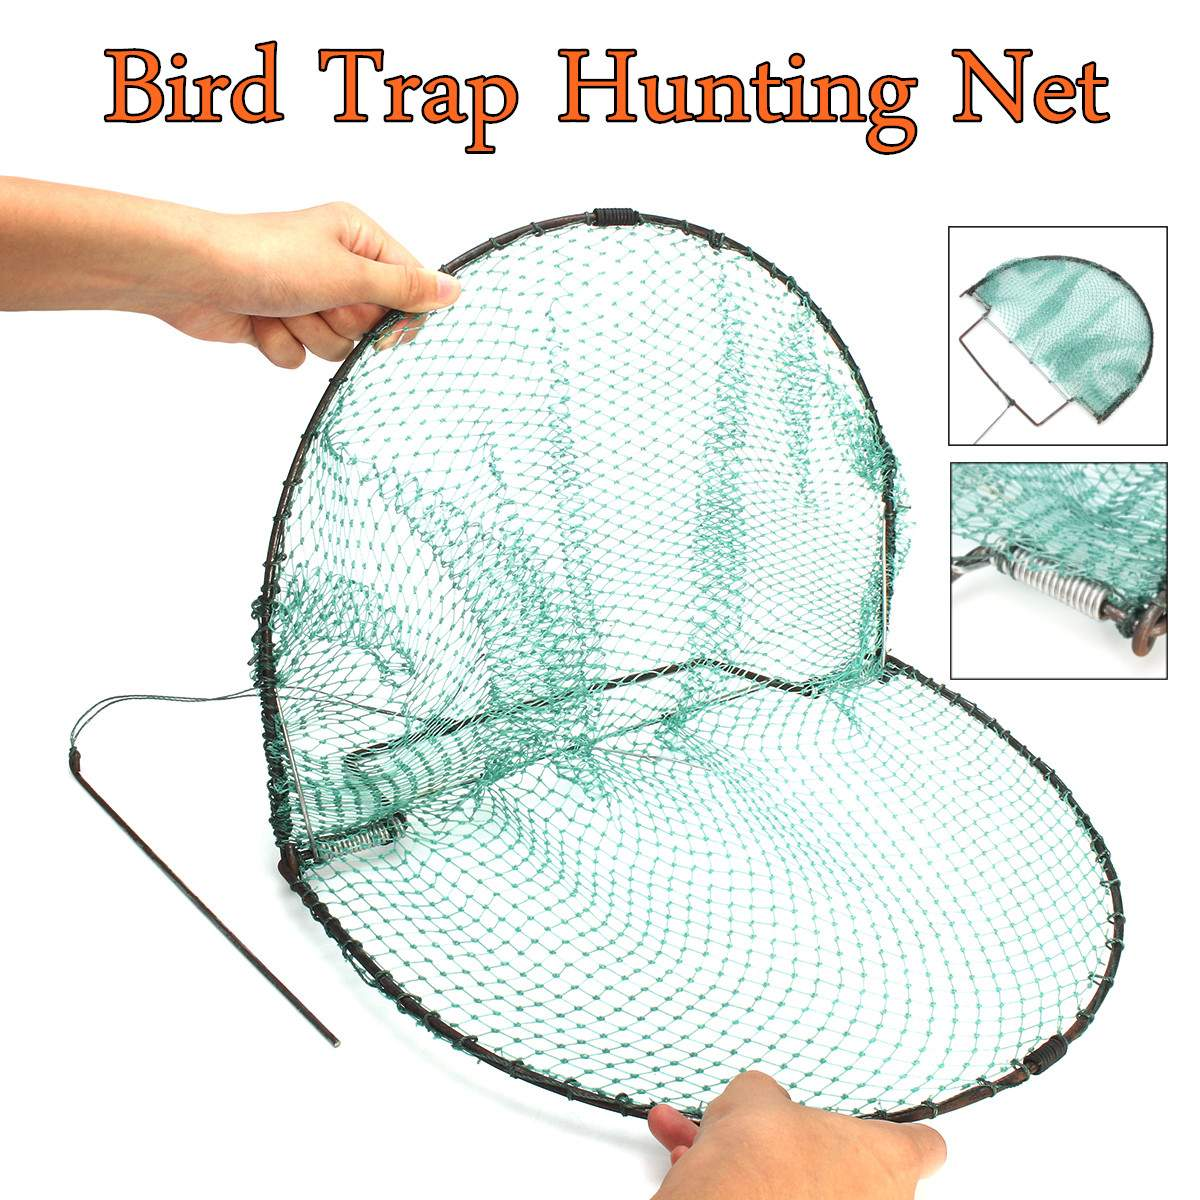 New Bird Net Effective Humane Live Trap Hunting Sensitive Quail Humane Trapping Hunting Garden Supplies Pest Control 49X30cm